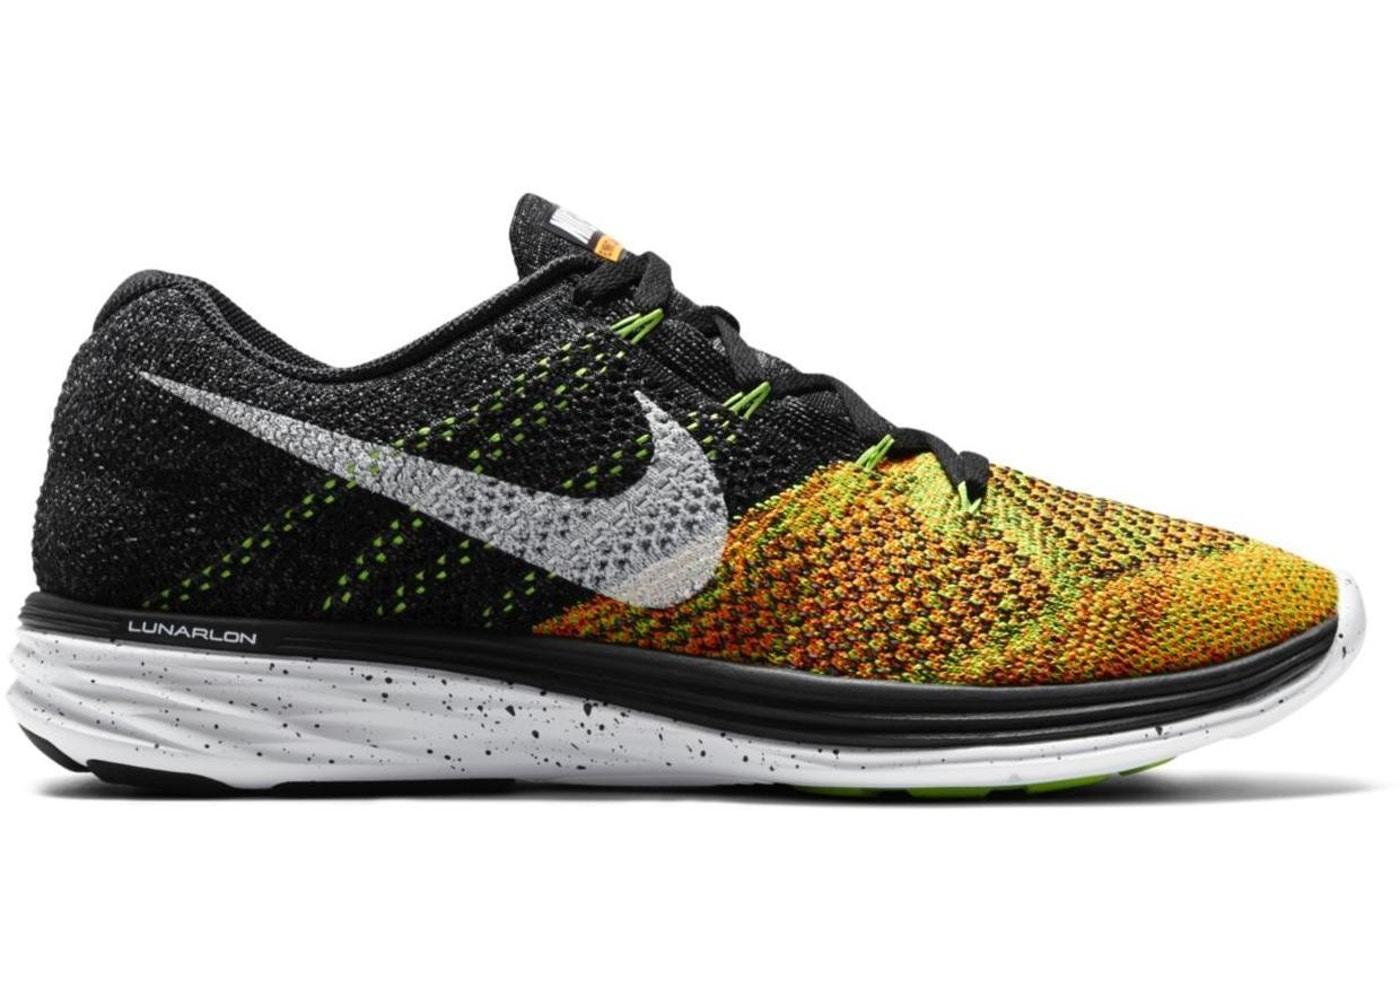 low priced e8c52 9e863 Nike Flyknit Lunar 3 Limited Edition